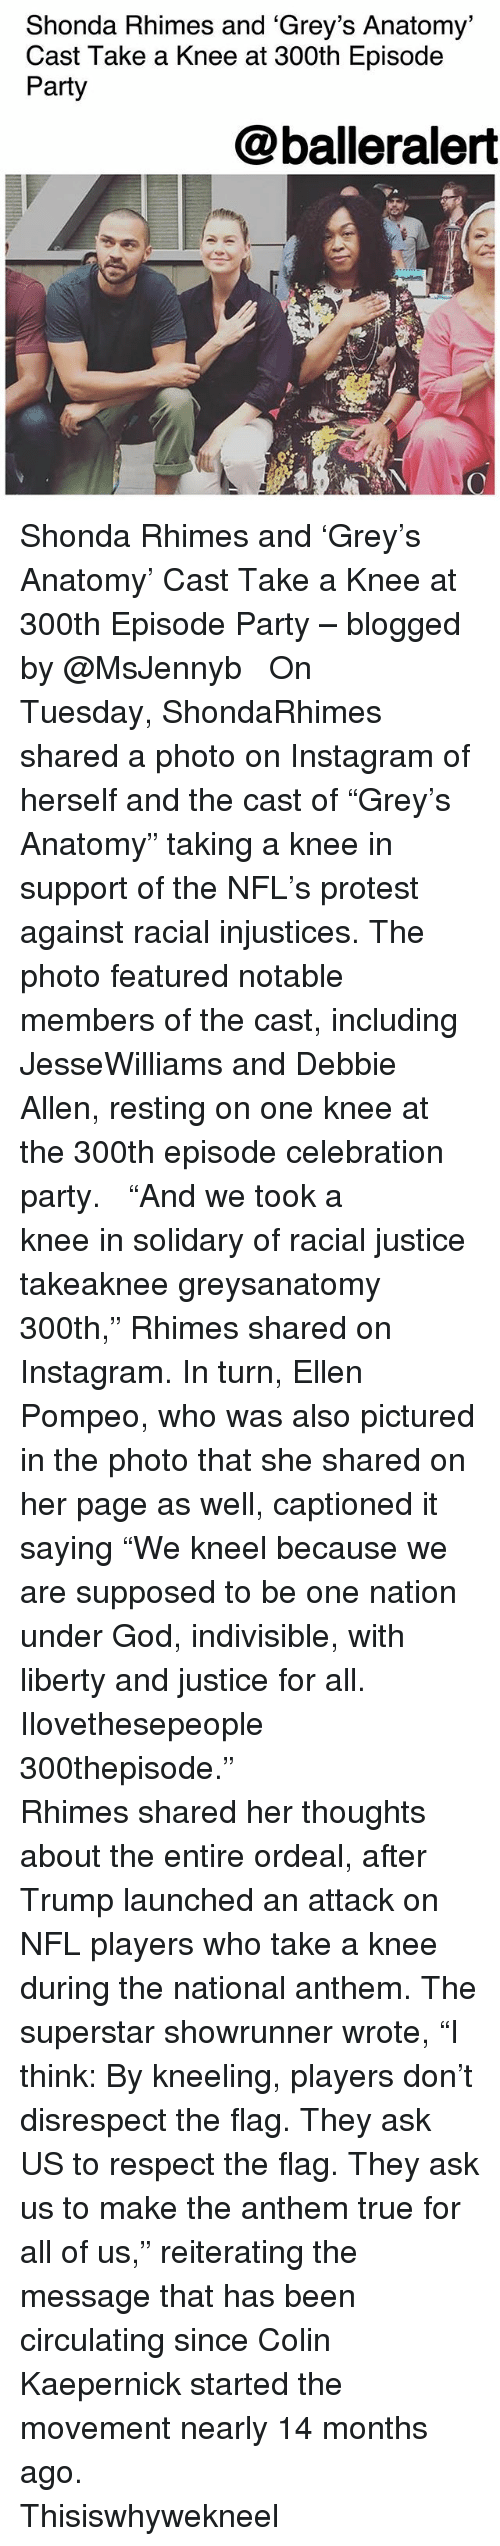 """Colin Kaepernick, God, and Instagram: Shonda Rhimes and 'Grey's Anatomy'  Cast Take a Knee at 300th Episode  Party  @balleralert Shonda Rhimes and 'Grey's Anatomy' Cast Take a Knee at 300th Episode Party – blogged by @MsJennyb ⠀⠀⠀⠀⠀⠀⠀ ⠀⠀⠀⠀⠀⠀⠀ On Tuesday, ShondaRhimes shared a photo on Instagram of herself and the cast of """"Grey's Anatomy"""" taking a knee in support of the NFL's protest against racial injustices. The photo featured notable members of the cast, including JesseWilliams and Debbie Allen, resting on one knee at the 300th episode celebration party. ⠀⠀⠀⠀⠀⠀⠀ ⠀⠀⠀⠀⠀⠀⠀ """"And we took a knee in solidary of racial justice takeaknee greysanatomy 300th,"""" Rhimes shared on Instagram. In turn, Ellen Pompeo, who was also pictured in the photo that she shared on her page as well, captioned it saying """"We kneel because we are supposed to be one nation under God, indivisible, with liberty and justice for all. Ilovethesepeople 300thepisode."""" ⠀⠀⠀⠀⠀⠀⠀ ⠀⠀⠀⠀⠀⠀⠀ Rhimes shared her thoughts about the entire ordeal, after Trump launched an attack on NFL players who take a knee during the national anthem. The superstar showrunner wrote, """"I think: By kneeling, players don't disrespect the flag. They ask US to respect the flag. They ask us to make the anthem true for all of us,"""" reiterating the message that has been circulating since Colin Kaepernick started the movement nearly 14 months ago. ⠀⠀⠀⠀⠀⠀⠀ ⠀⠀⠀⠀⠀⠀⠀ Thisiswhywekneel"""